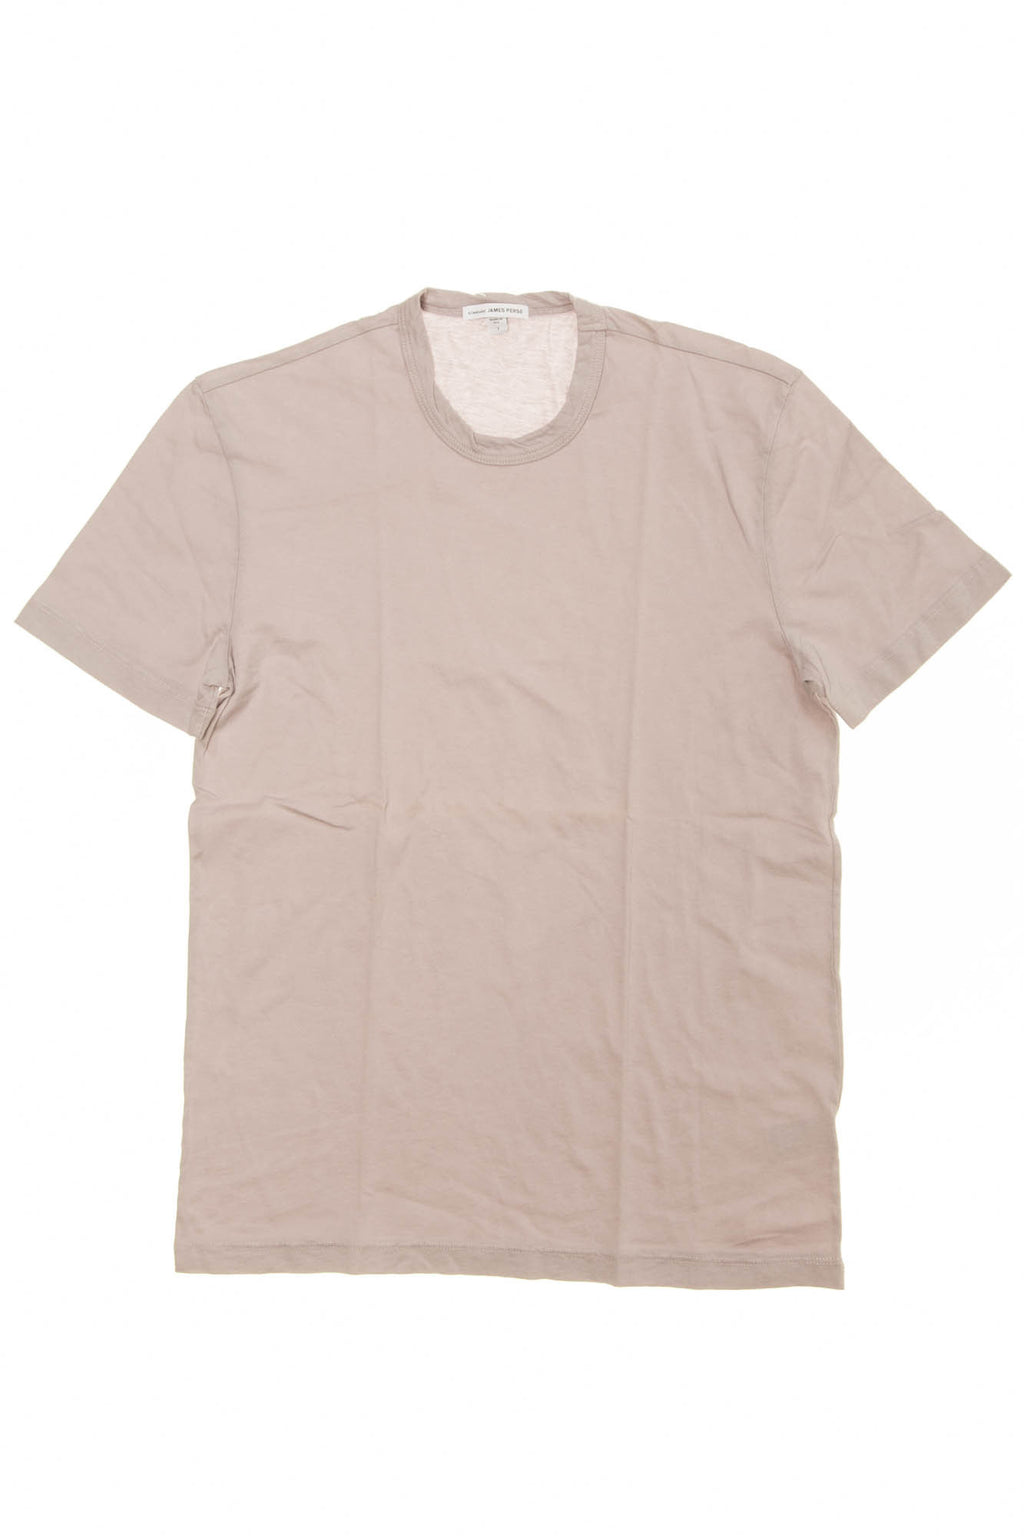 James Perse - Taupe Short Sleeve Tshirt - 1